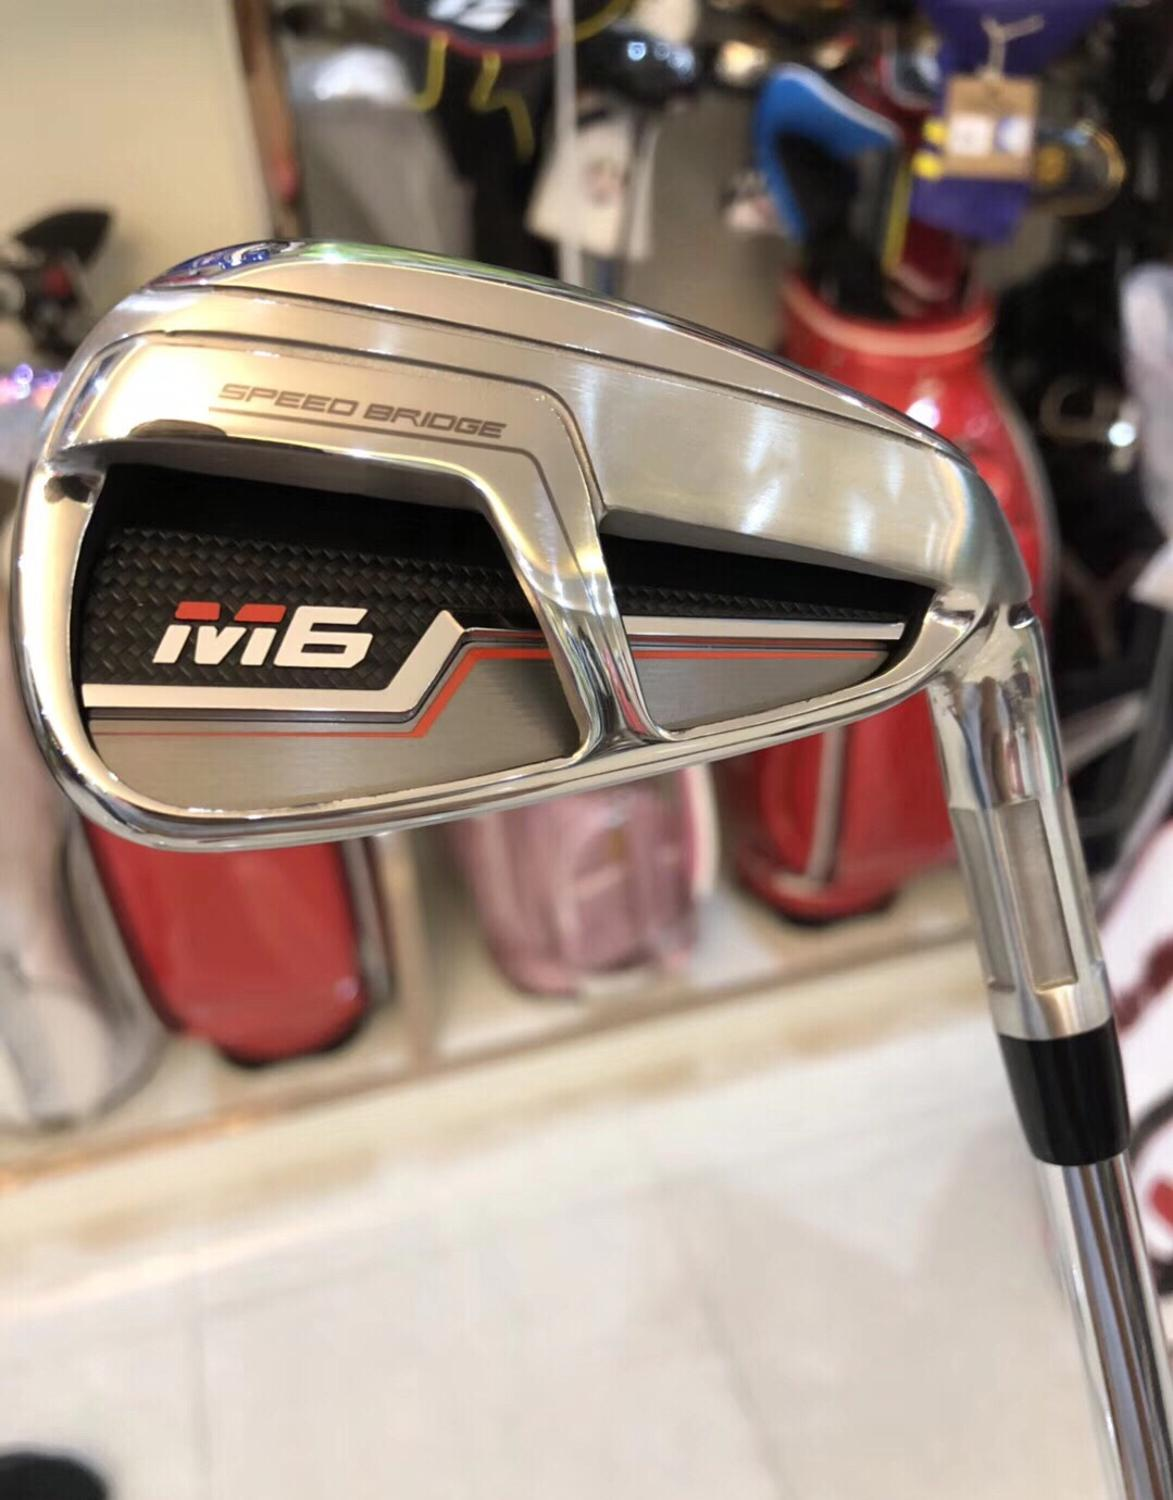 Brand New M6 Iron Set M6 Golf Irons M6 Golf Clubs 456789PS(8PCS) R/S Flex Steel/Graphite Shaft With Head Cover